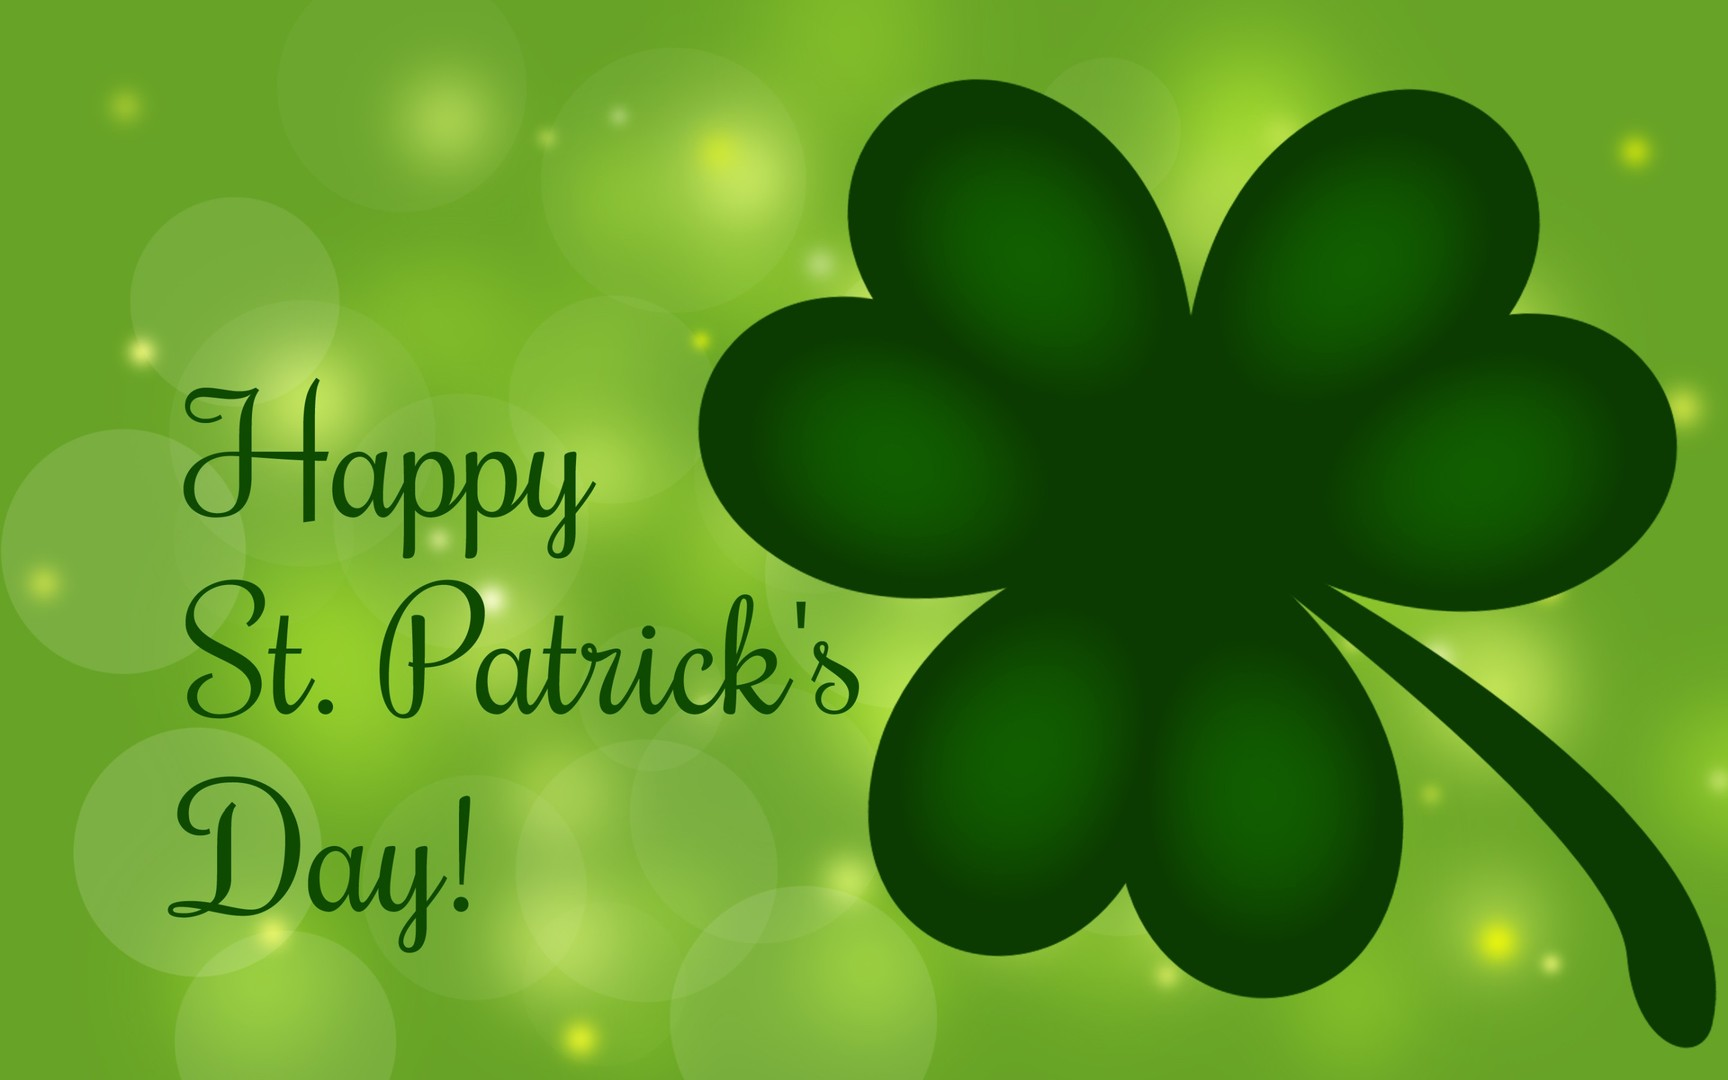 st-Patricks-day-hd-wallpapers-and-images-11